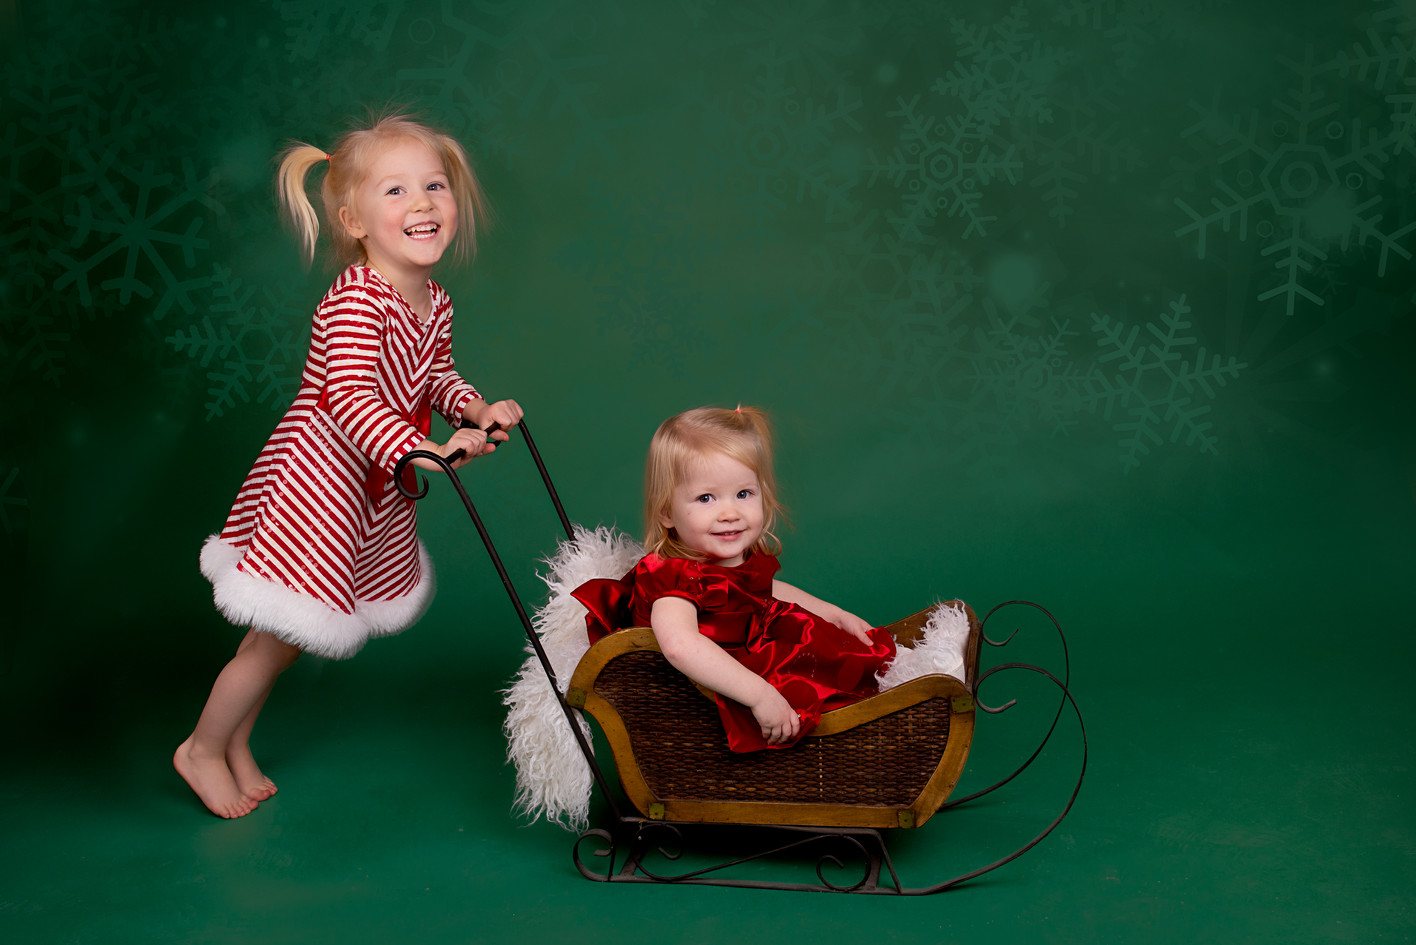 Chistmast children's studio photography